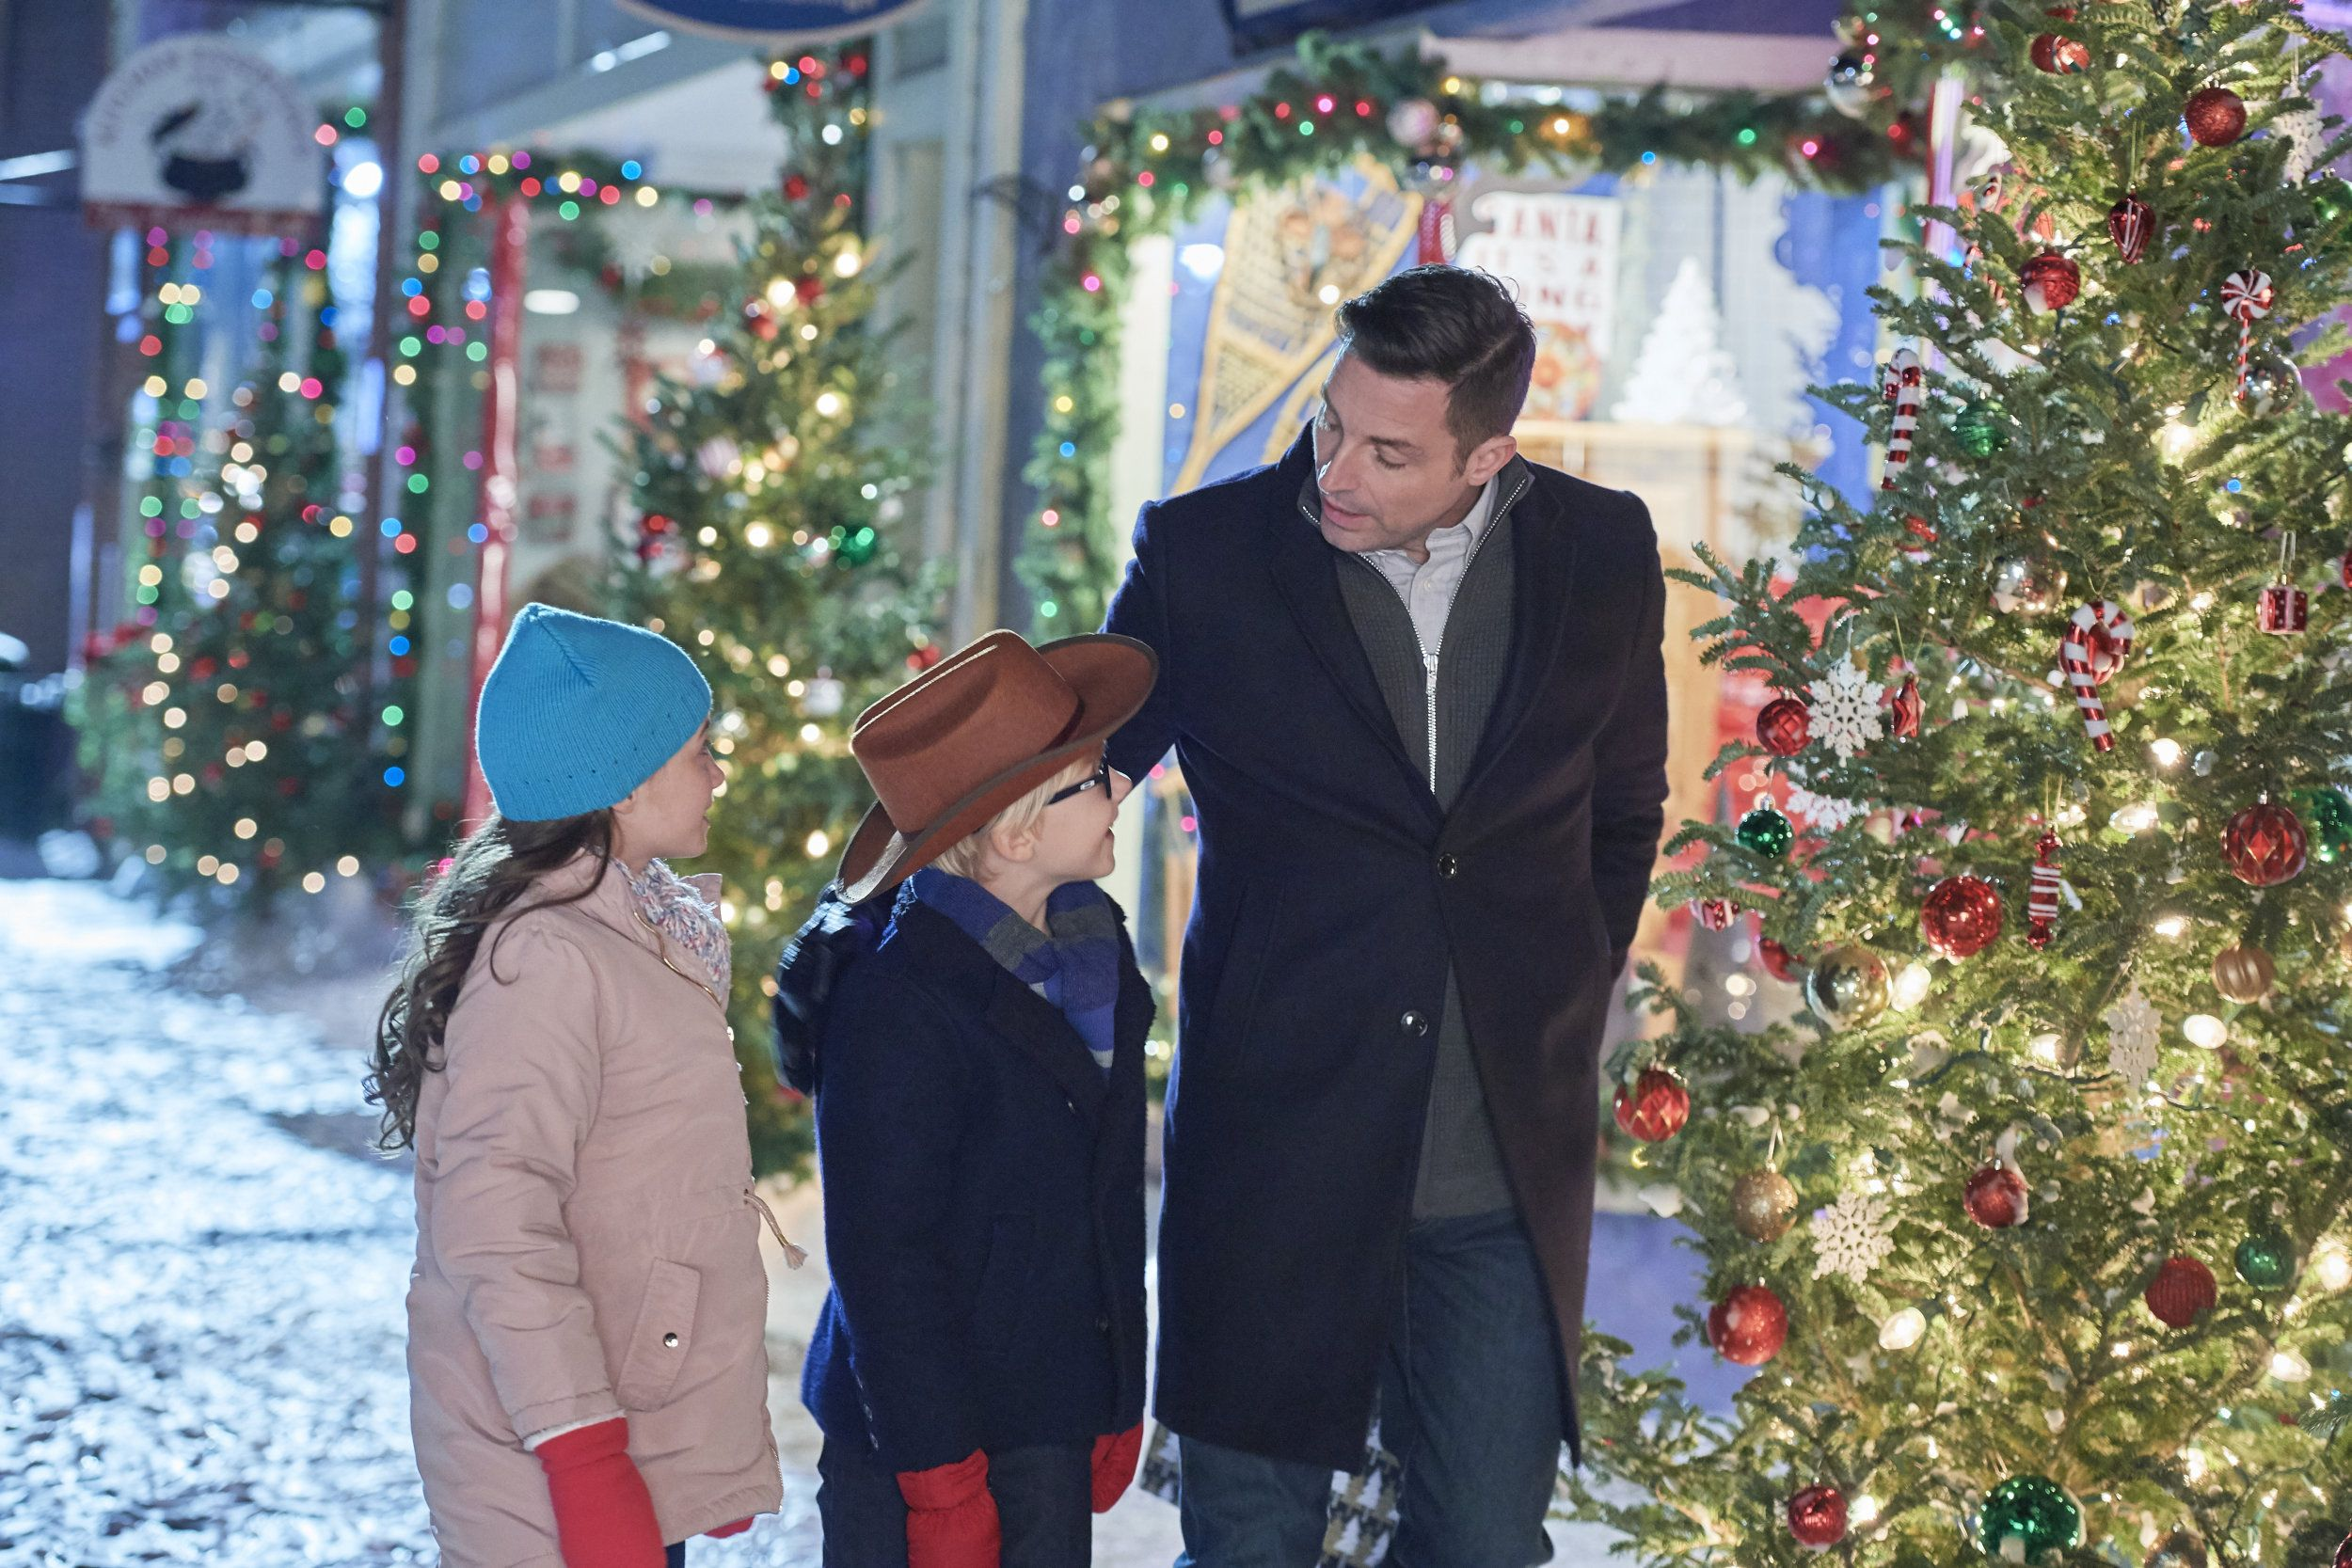 Christmas At Grand Valley.Check Out The Photo Gallery From The Hallmark Movies